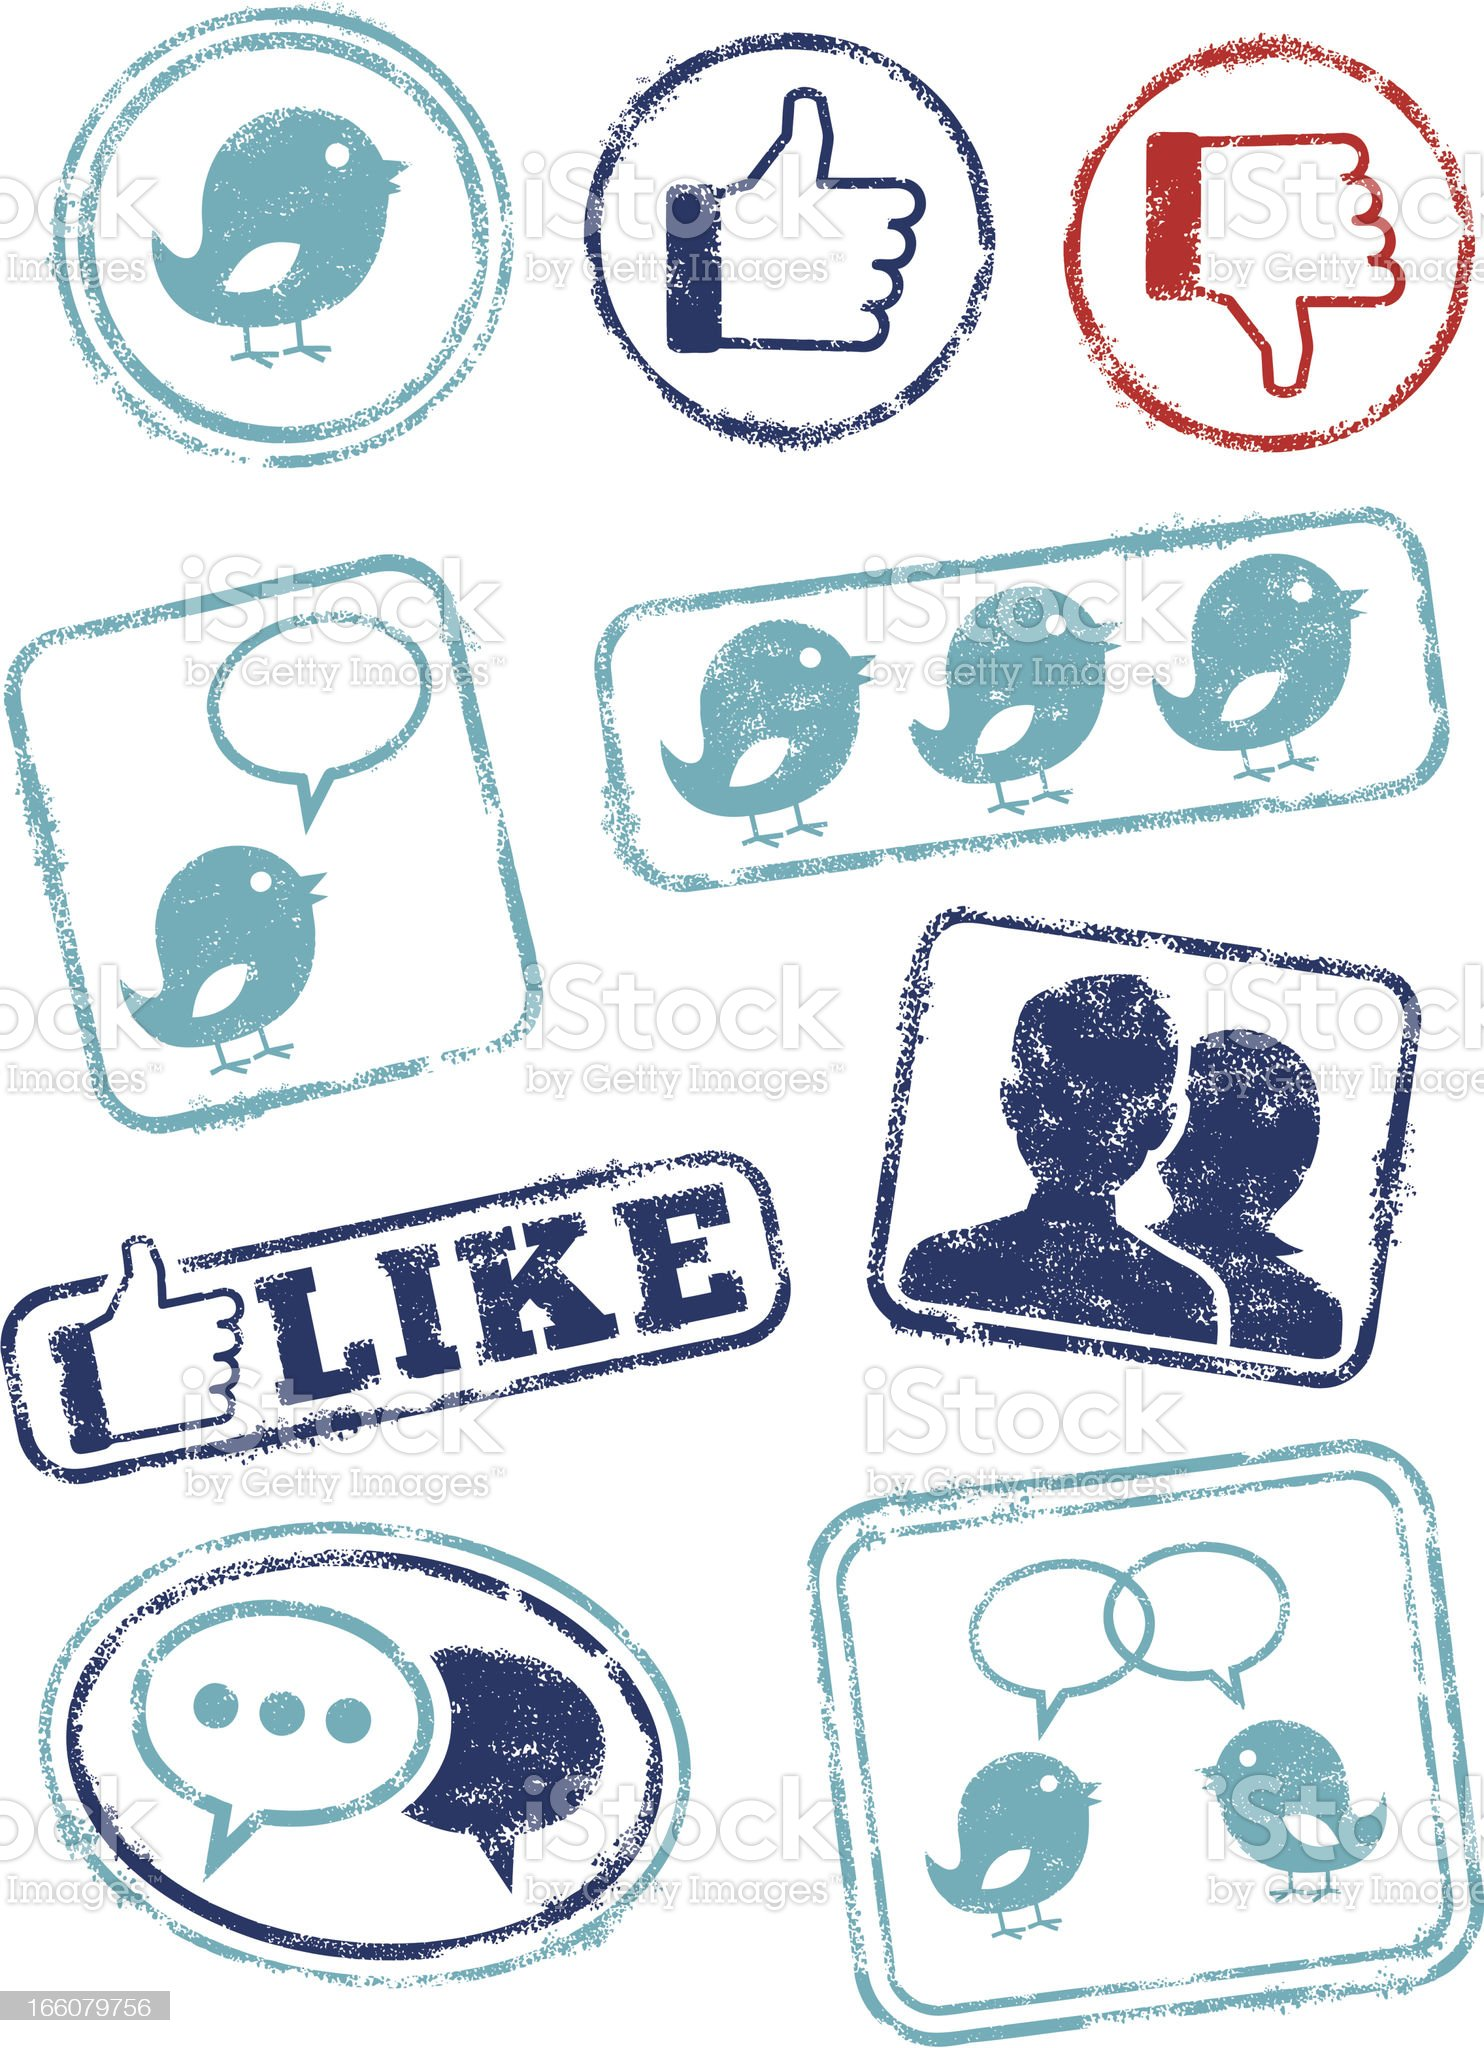 Social media rubber stamps royalty-free stock vector art